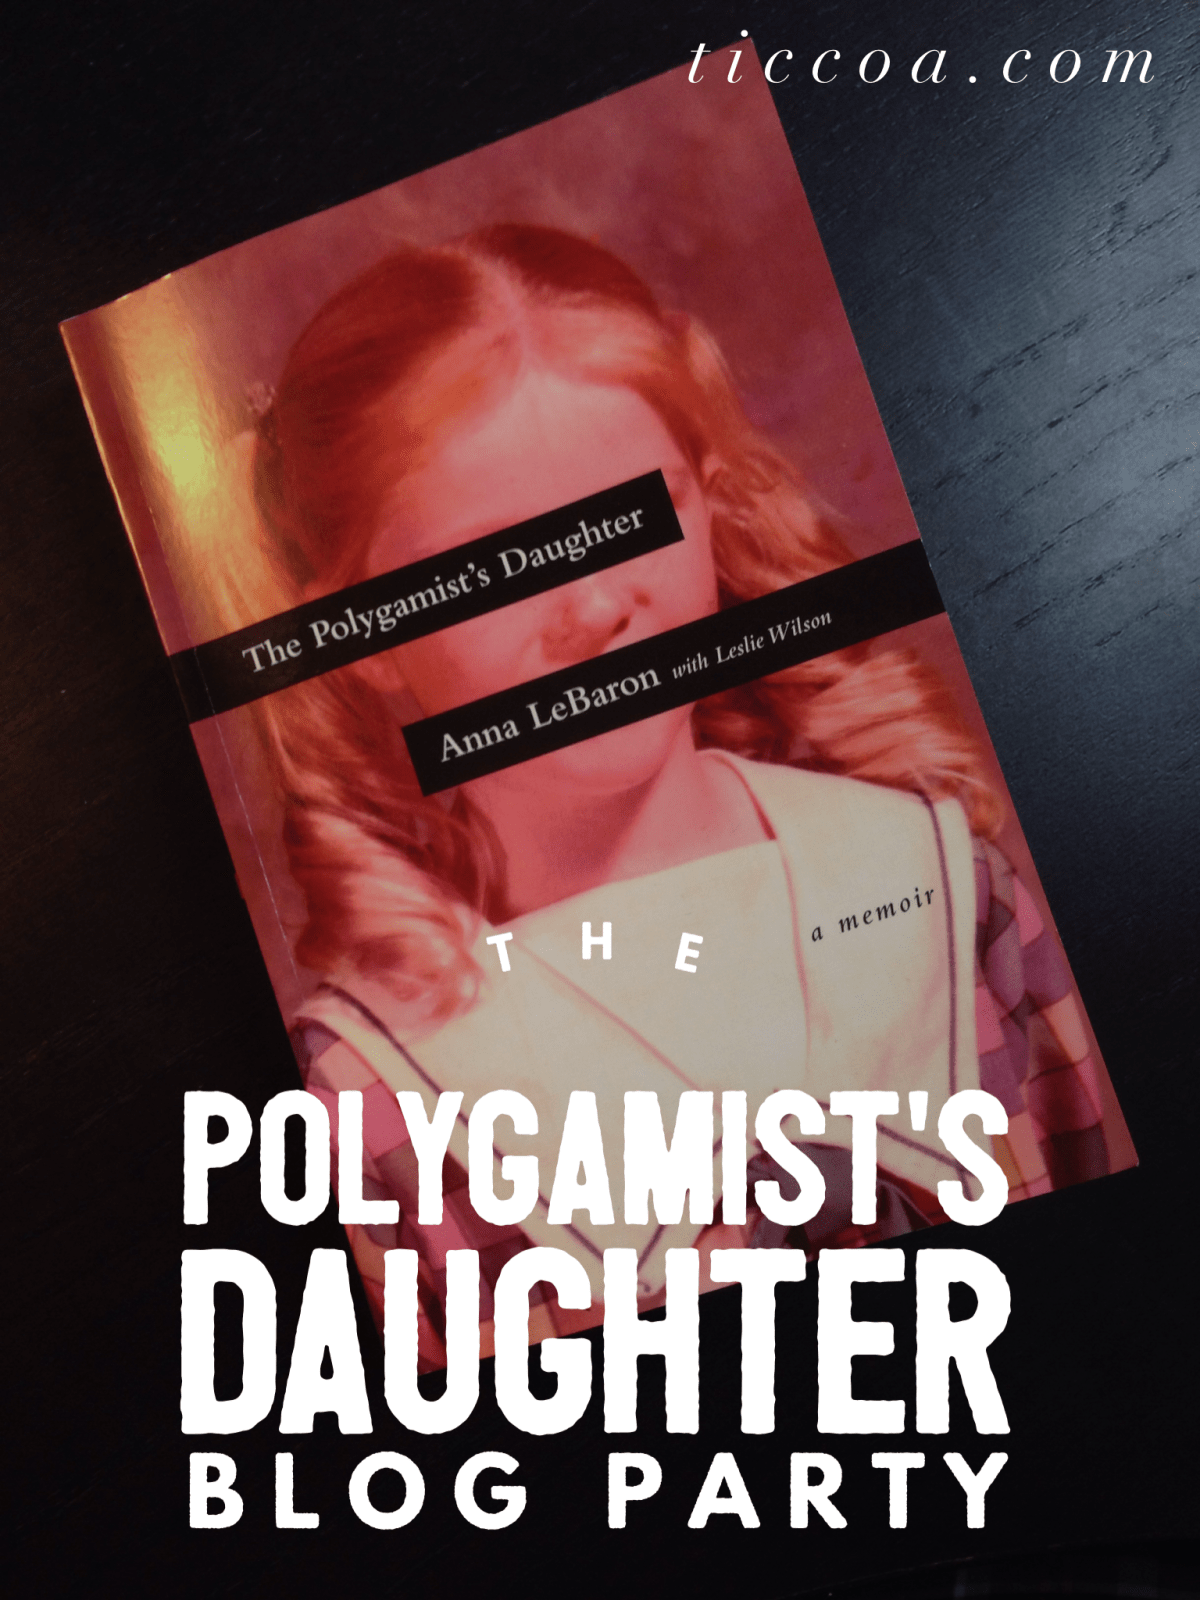 The Polygamist's Daughter Blog Party